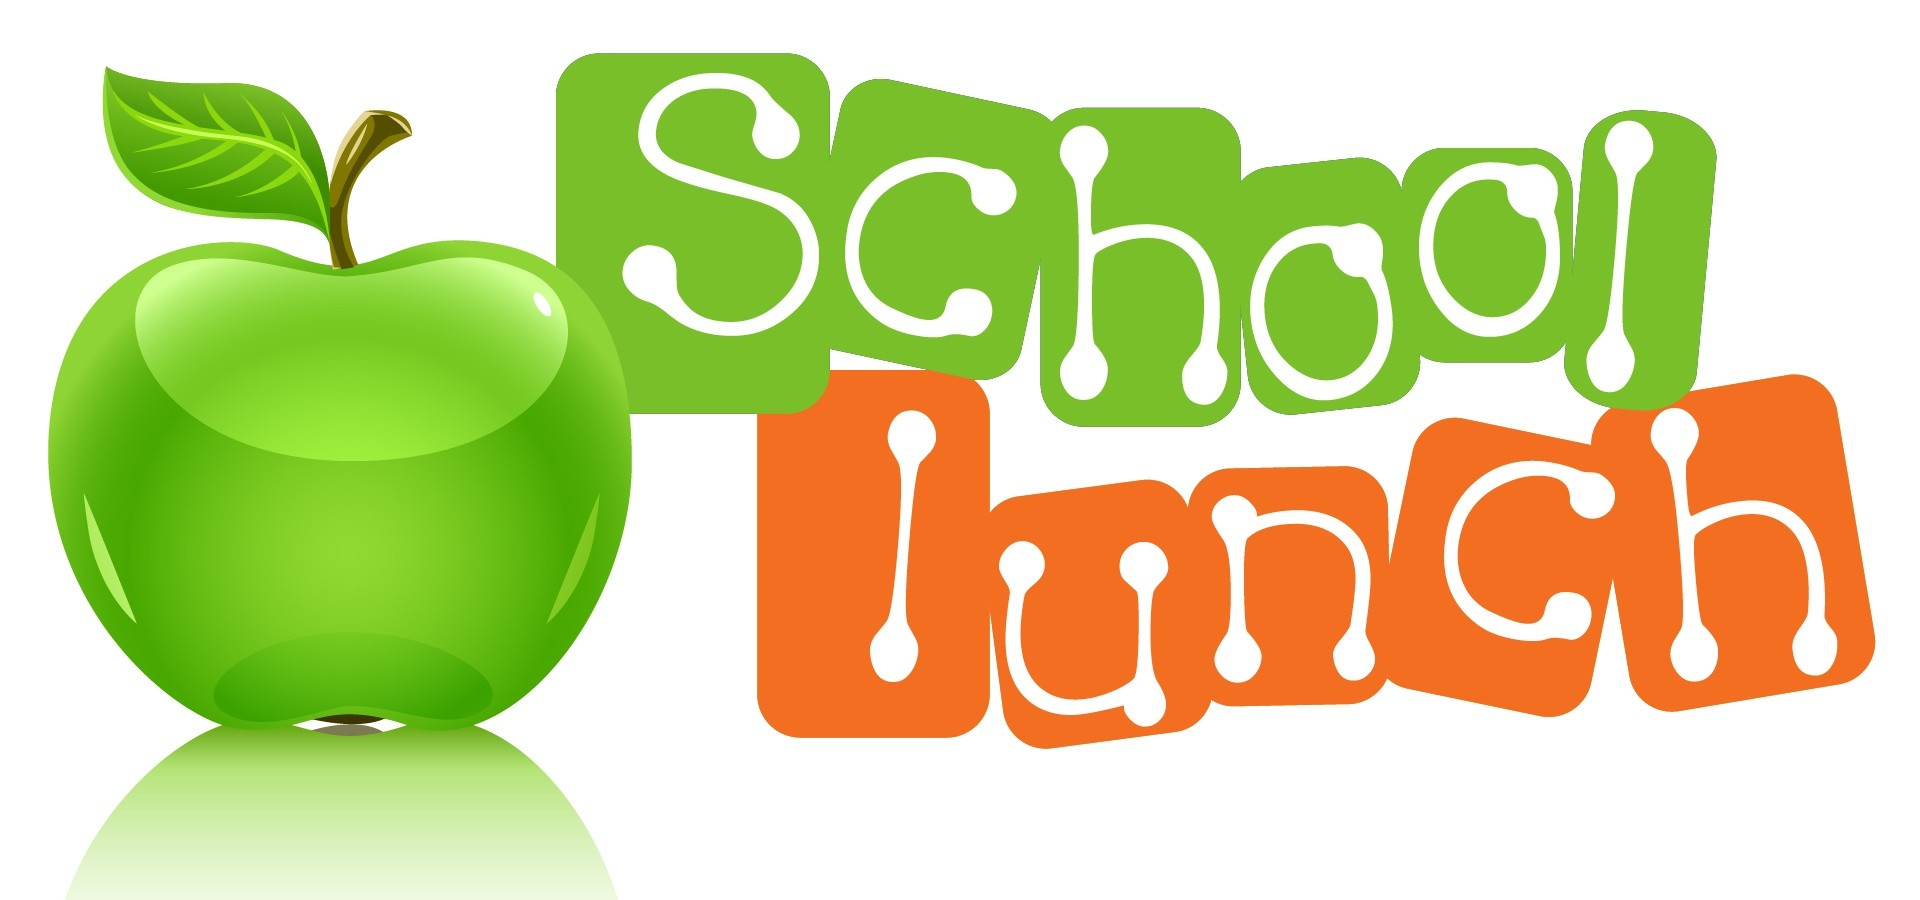 Healthy School Lunch Clip Art | www.imgkid.com - The Image ...